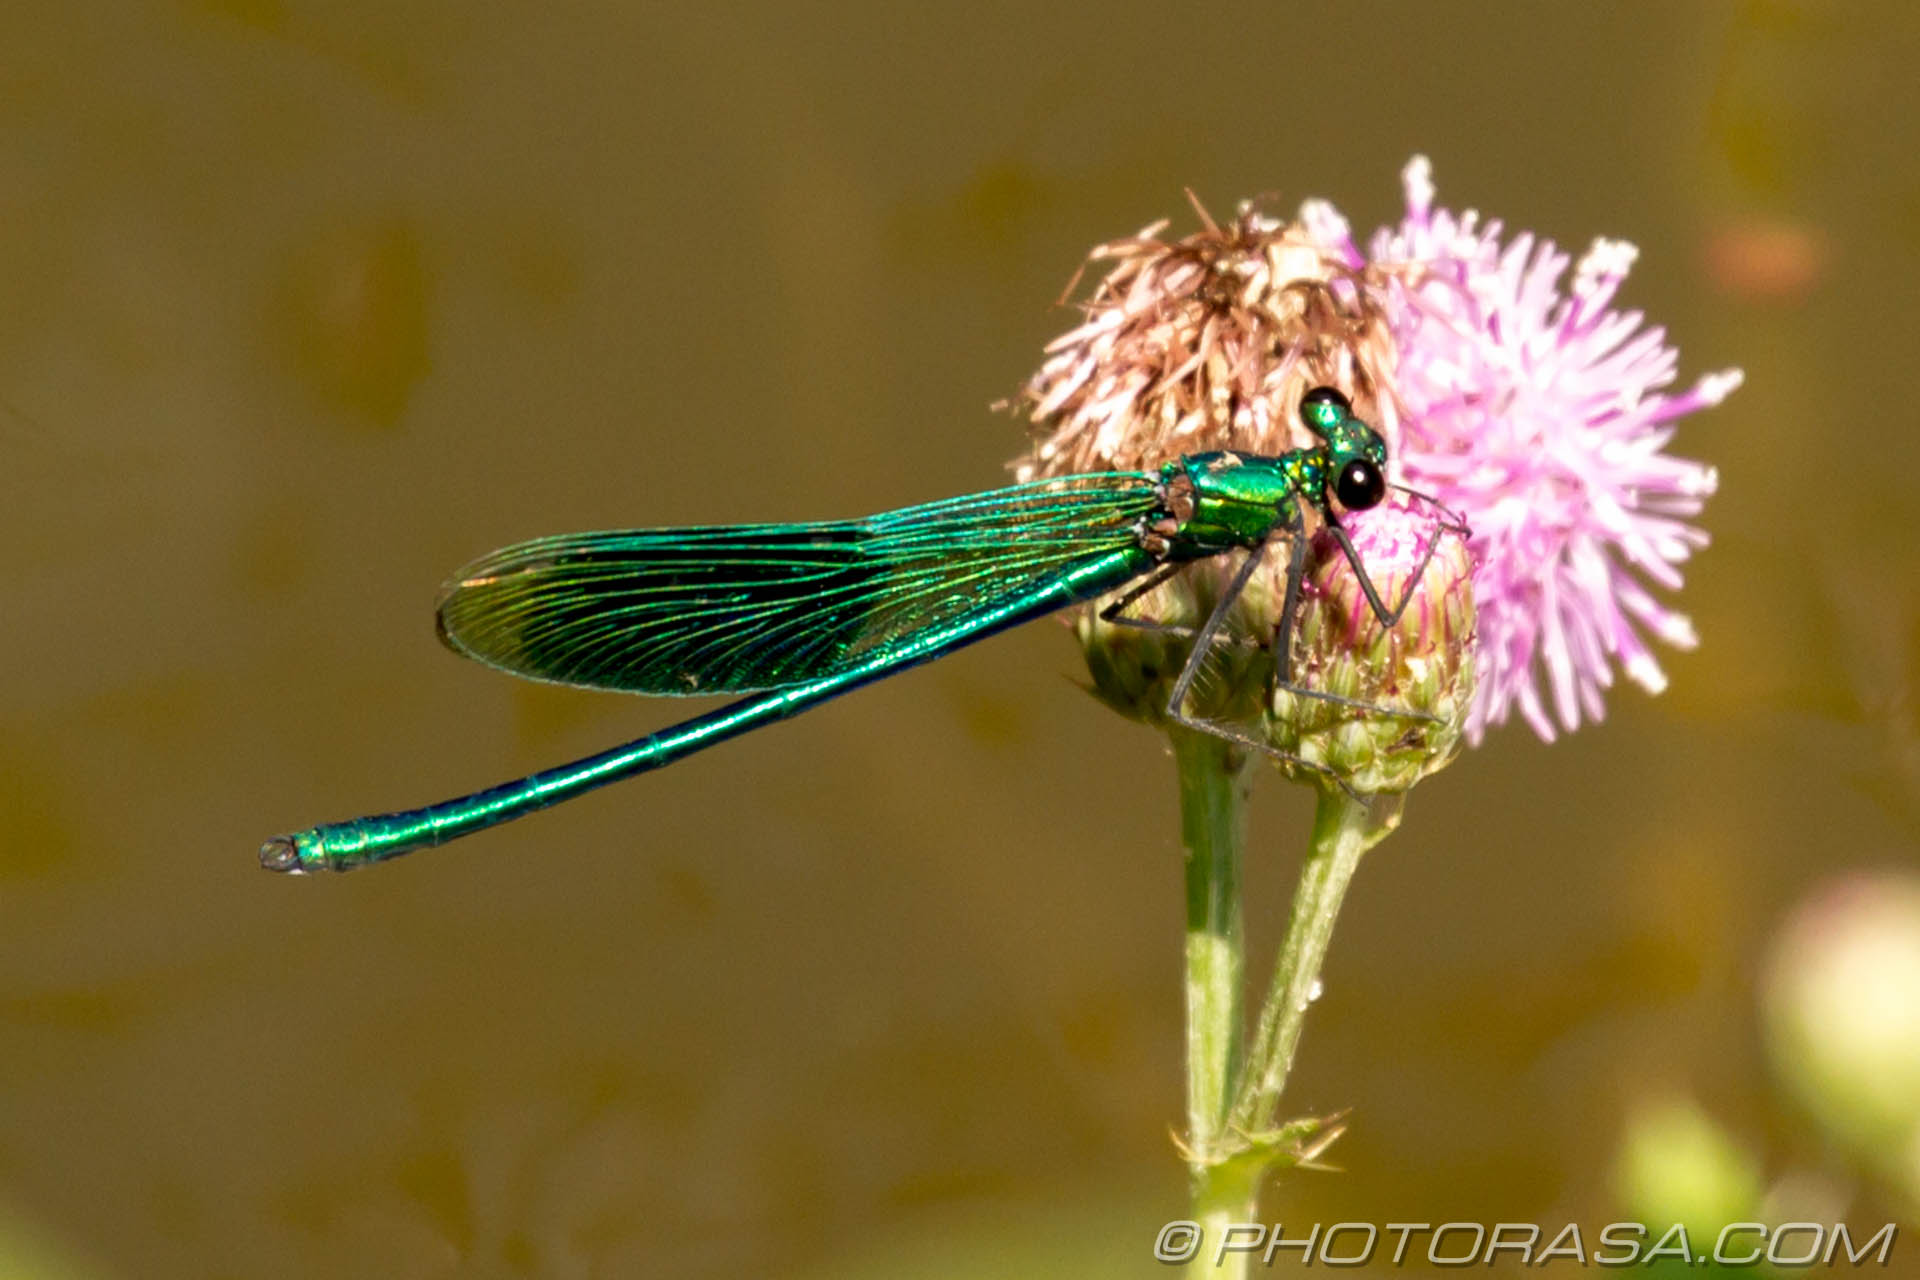 http://photorasa.com/damselflies/green-demoiselle/